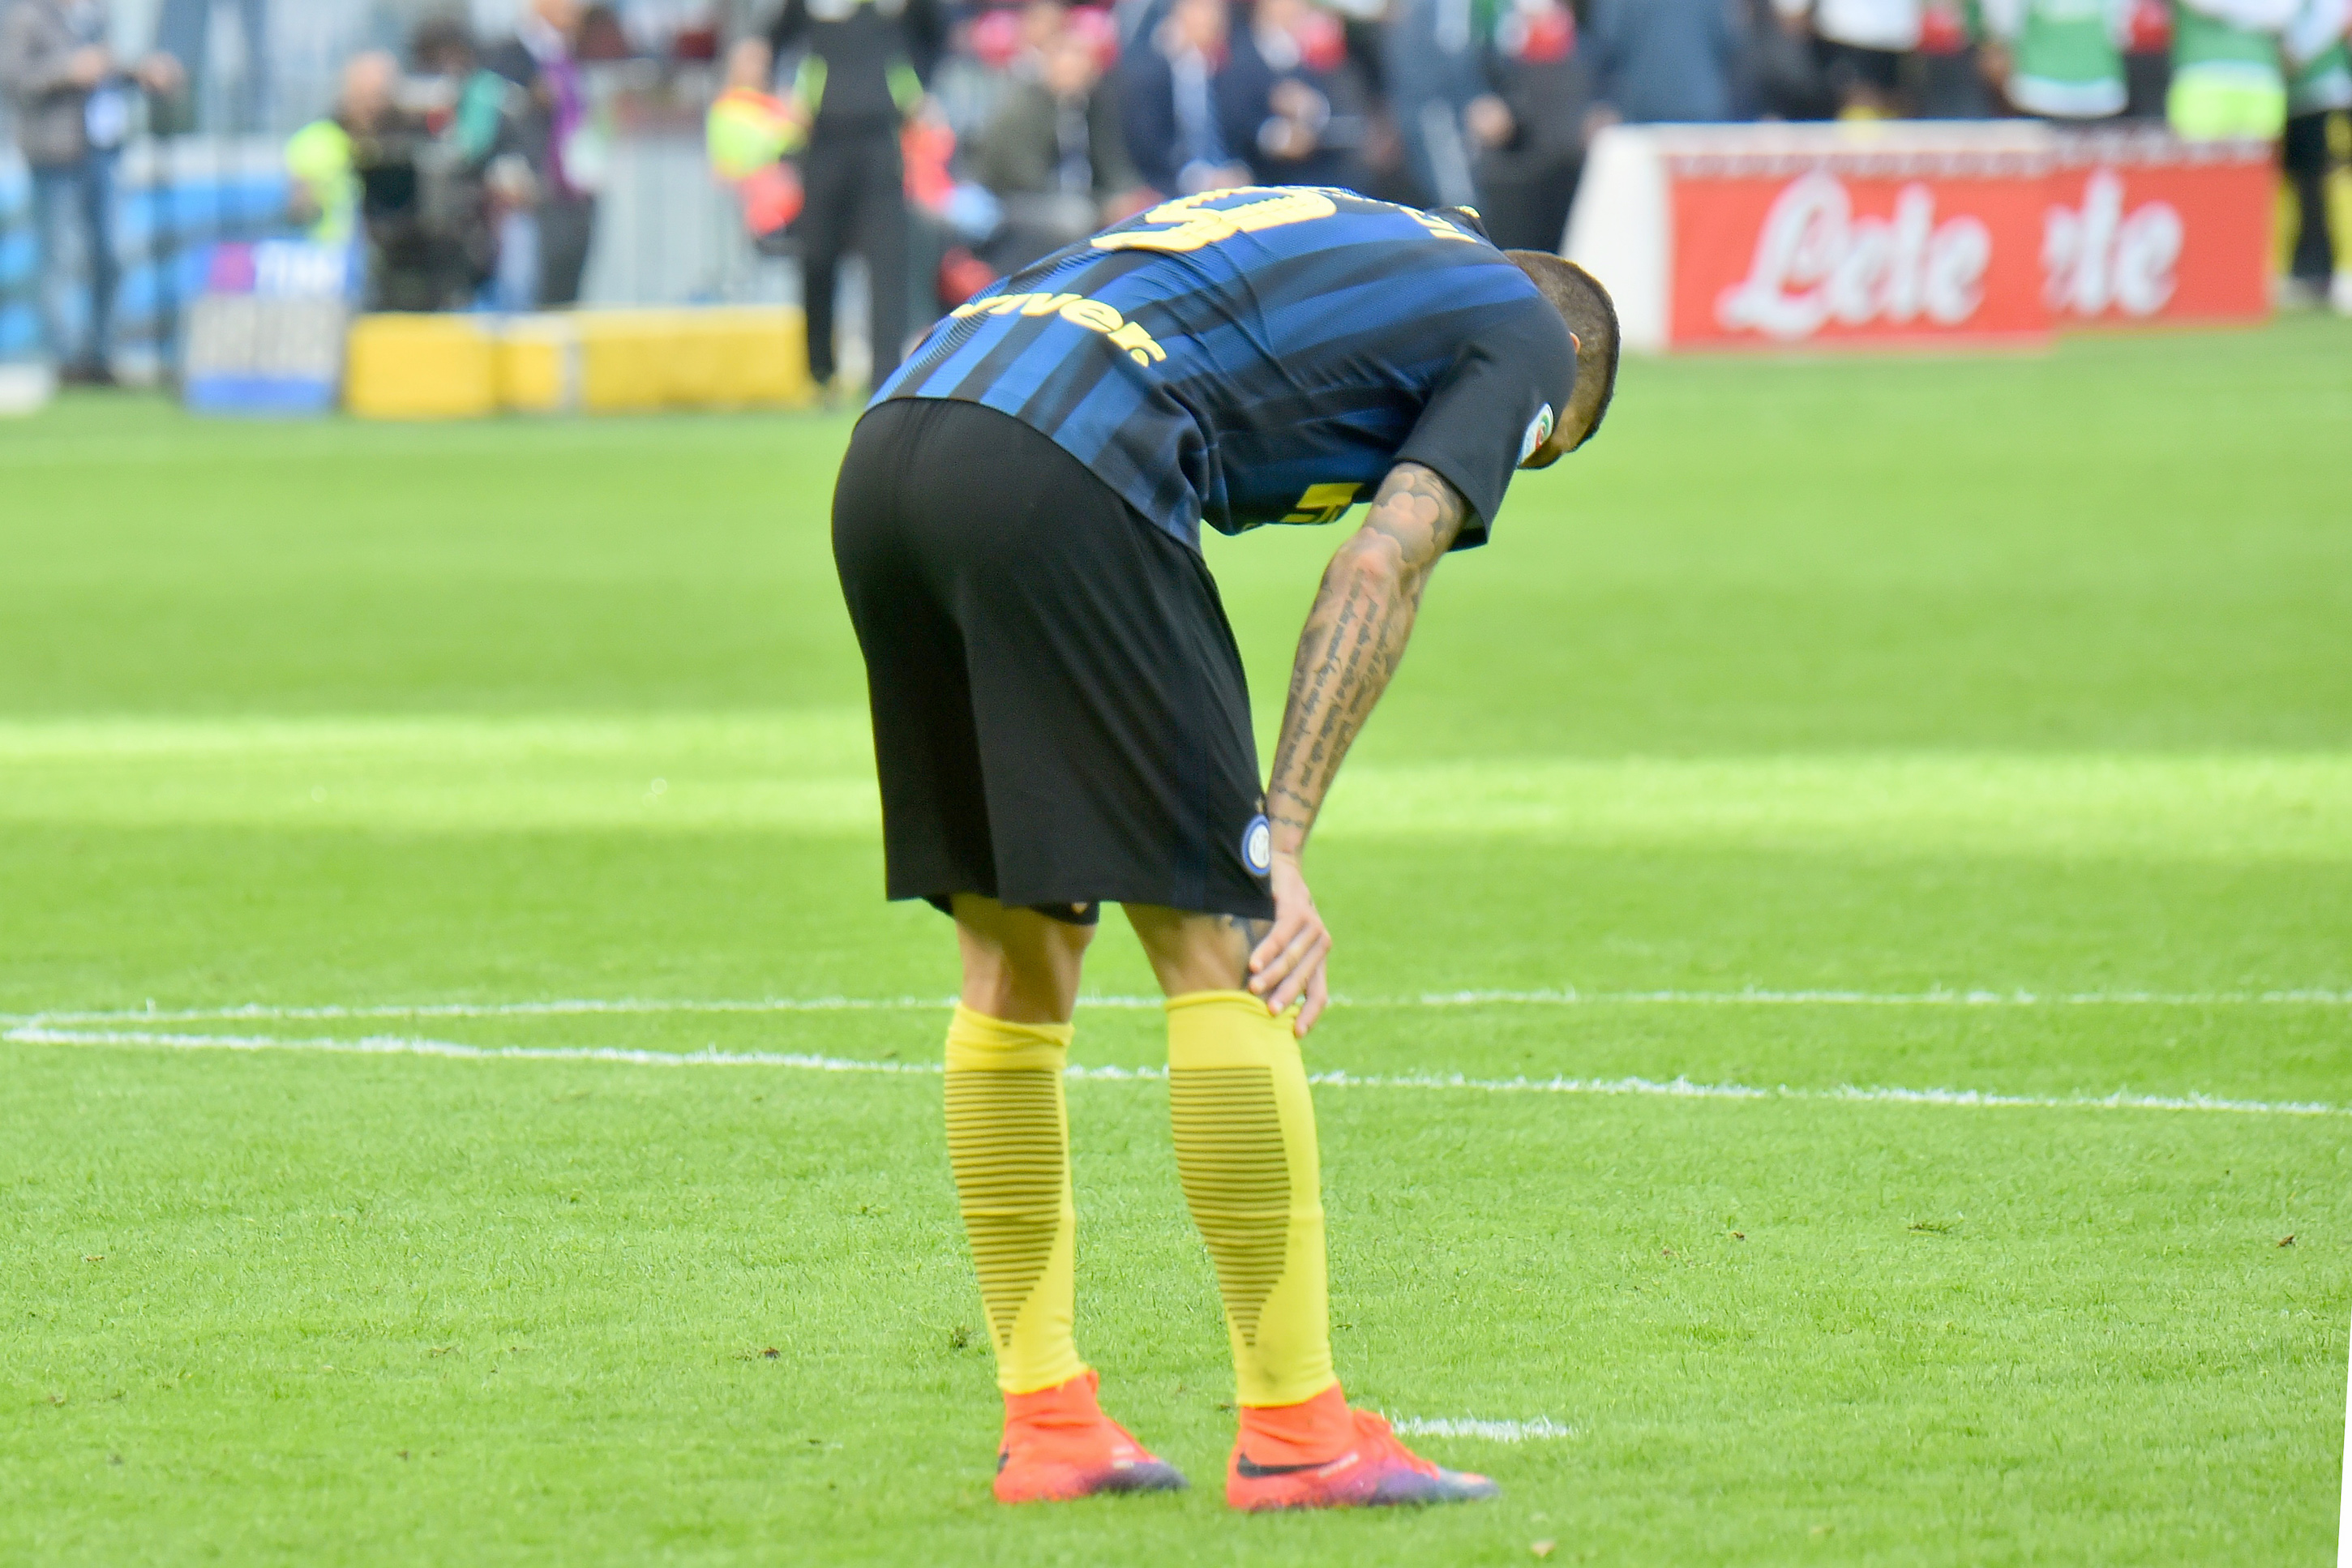 """Inter Milan's forward and captain from Argentina Mauro Icardi reacts during the Italian Serie A football match Inter Milan vs Cagliari at """"San Siro"""" Stadium in Milan on October 16, 2016. / AFP / GIUSEPPE CACACE (Photo credit should read GIUSEPPE CACACE/AFP/Getty Images)"""